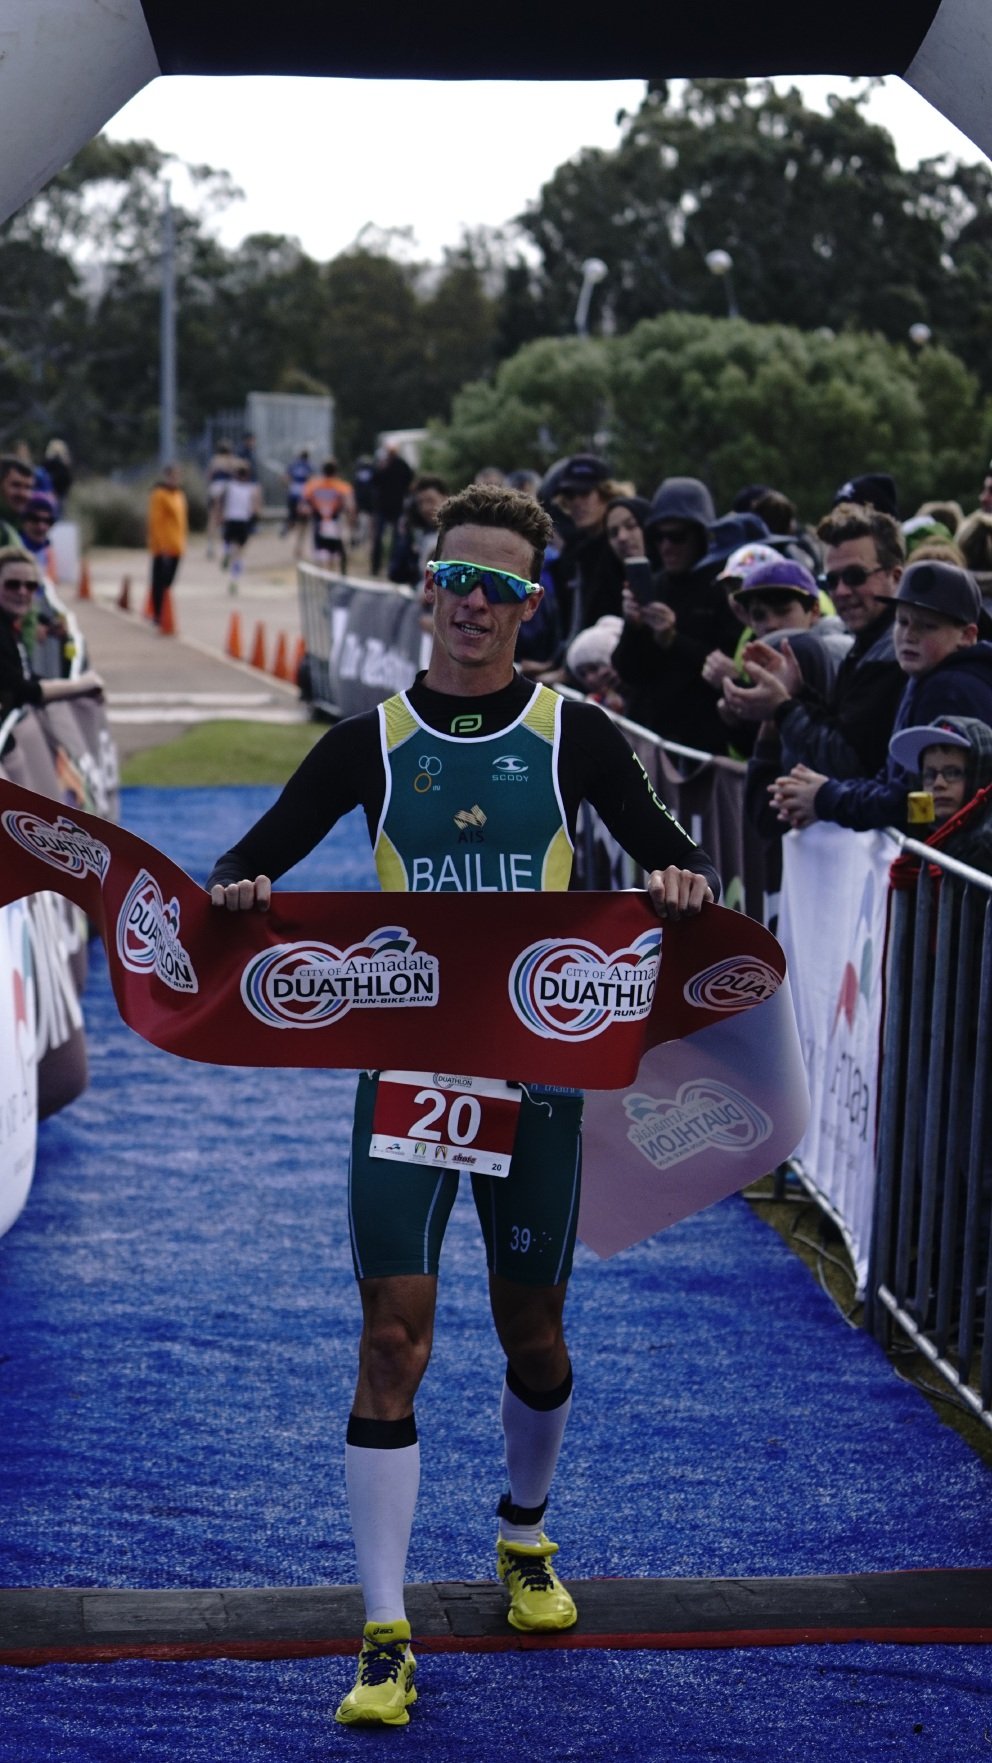 Ryan Bailie crosses the line at the City of Armadale Duathlon at Champion Lakes Regatta Centre.